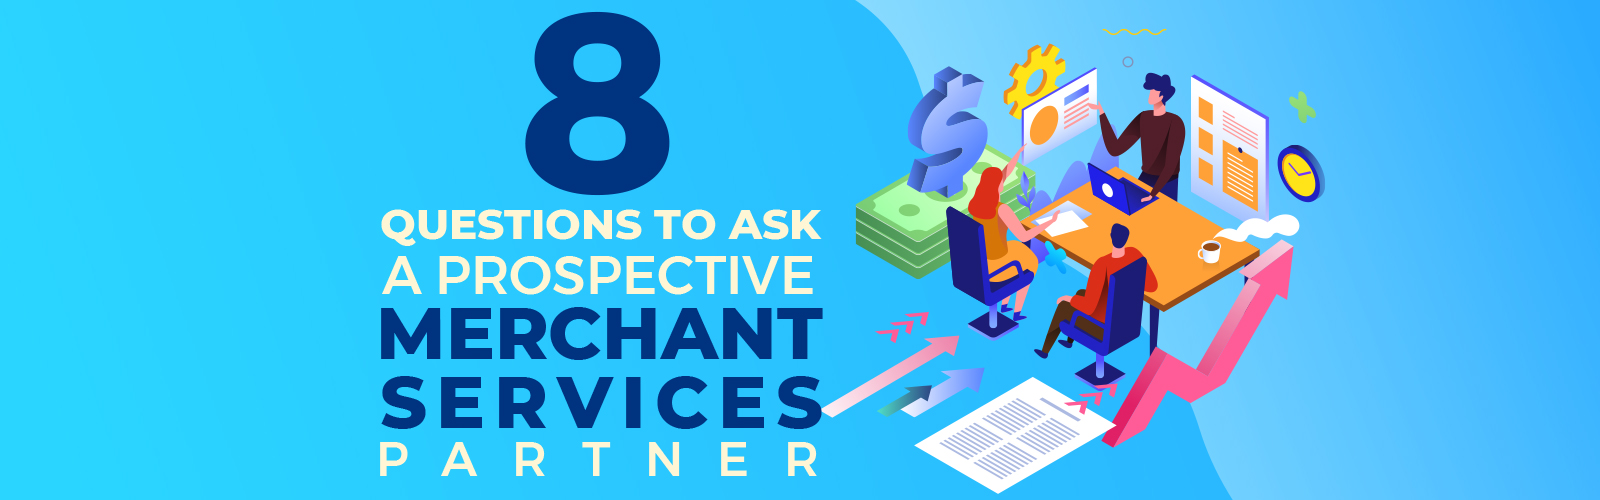 8 Questions to Ask a Prospective Merchant Services Partner - Banner